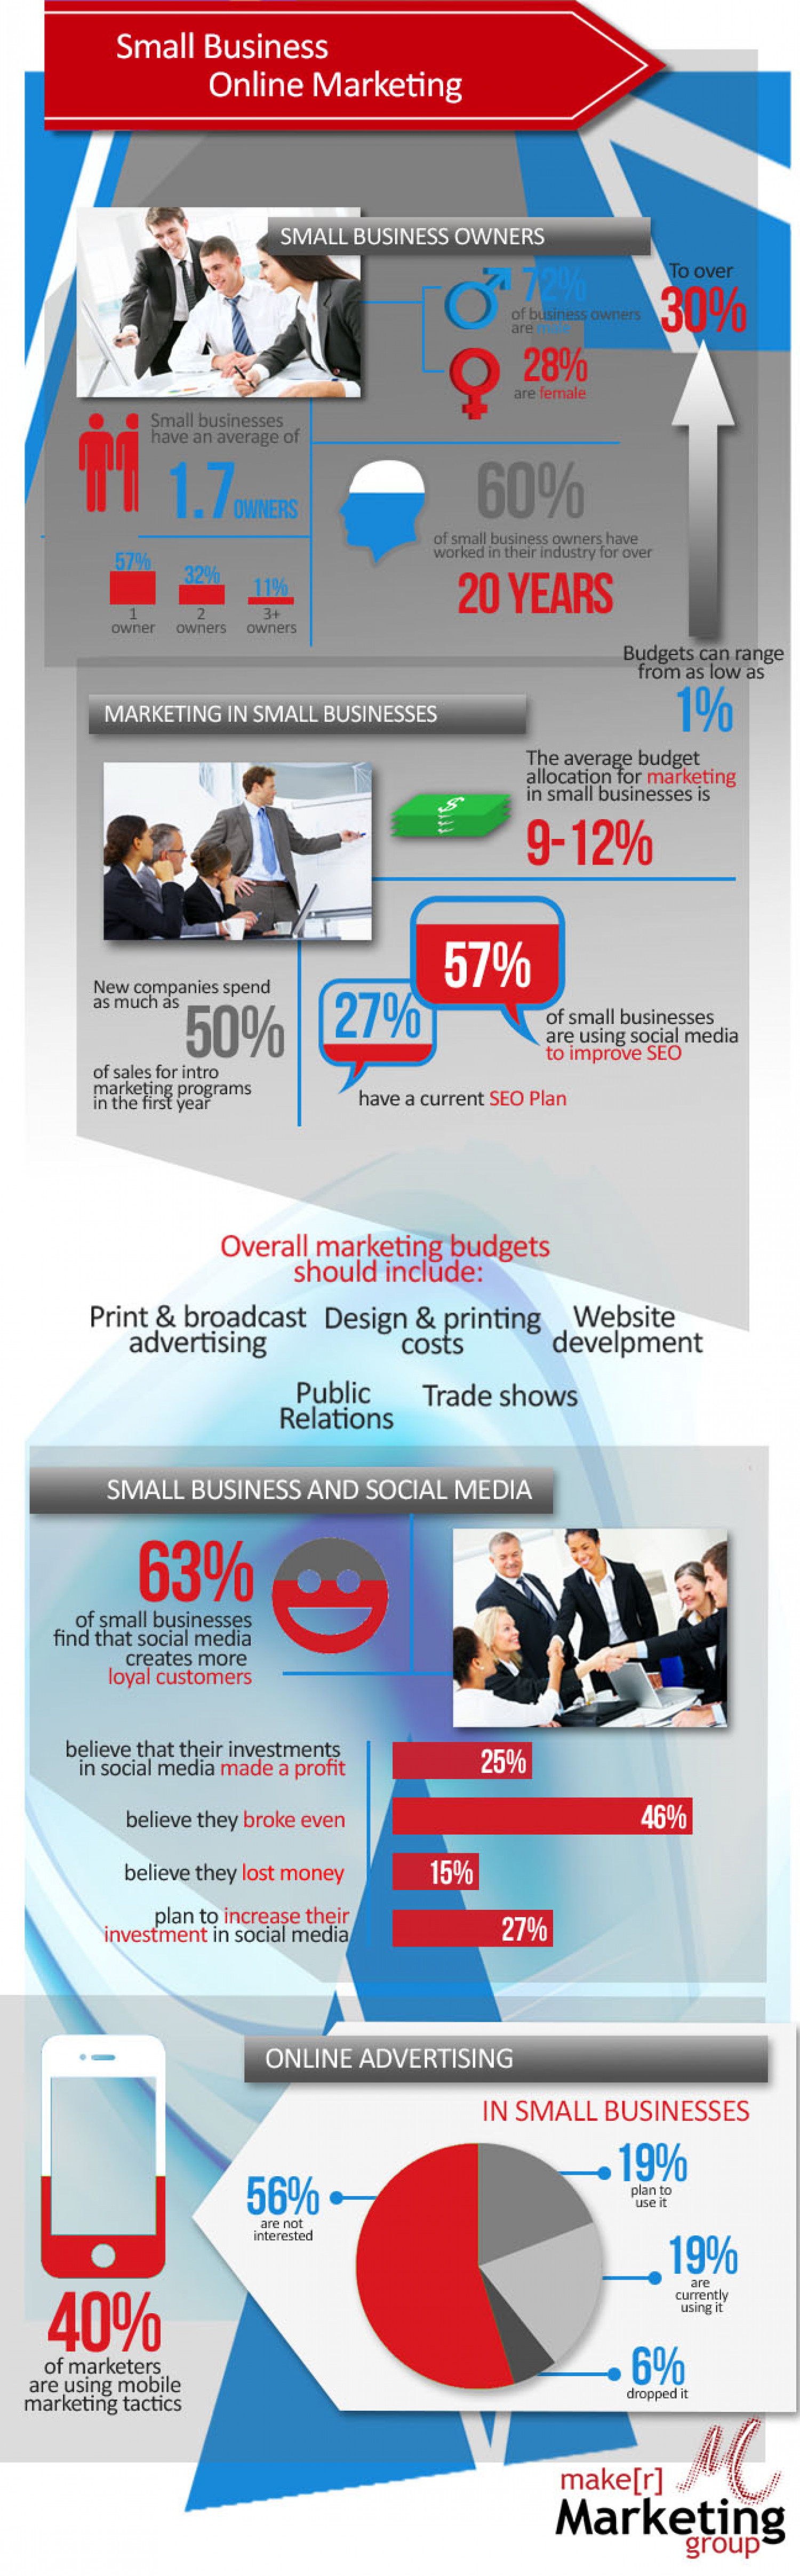 Small Business Online Marketing Infographic